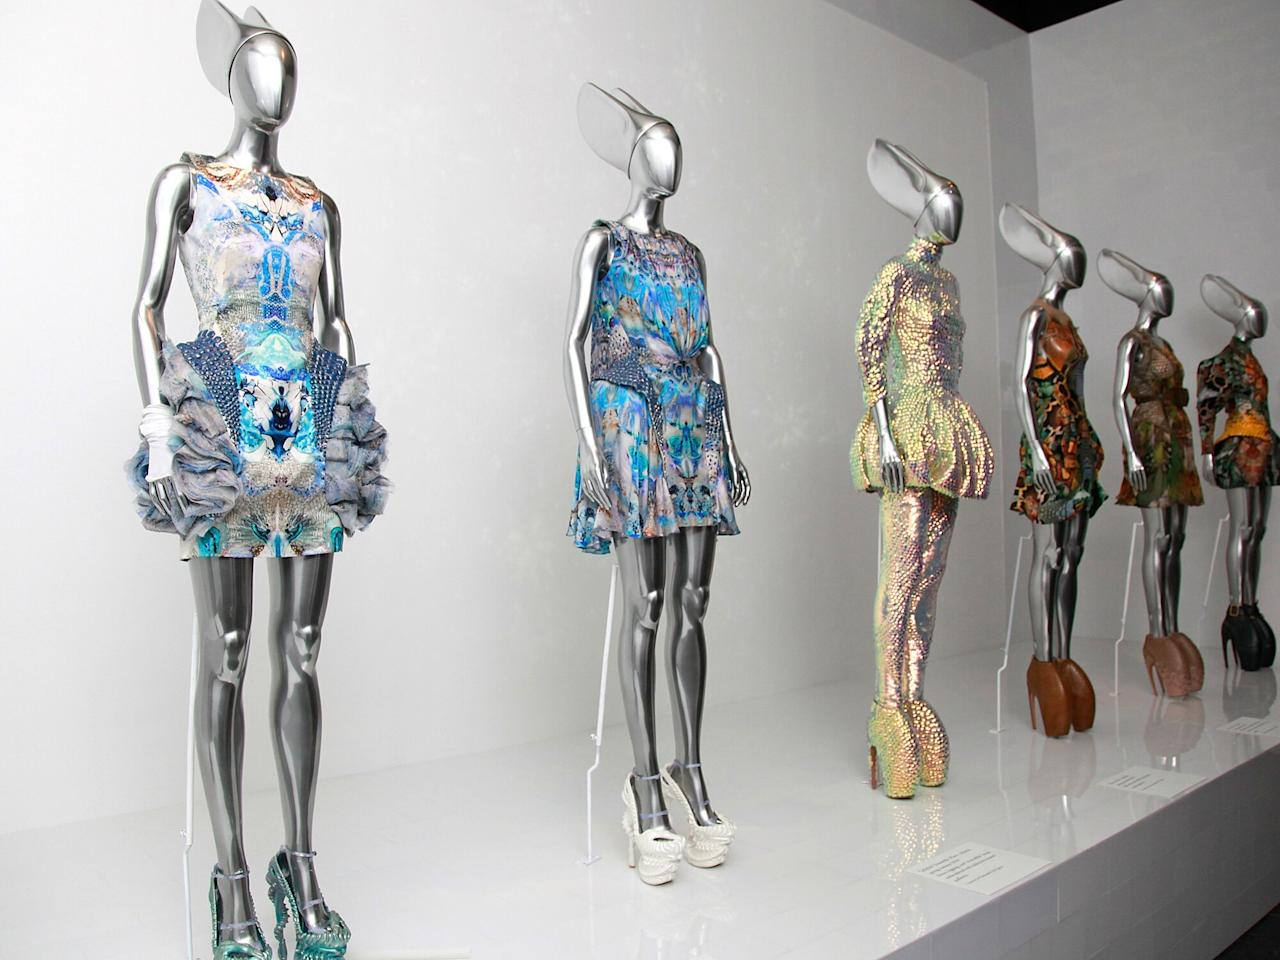 """Just over a year after the death of Alexander McQueen, the Met's Costume Institute honored the brilliant young designer with """"Savage Beauty,"""" an exhibit of his work that launched at the Met Gala. The collection included """"manta dresses,"""" pictured, from McQueen's final show, SS 2010's """"Plato's Atlantis"""" — some pieces from which had also been used in Lady Gaga's """"Bad Romance"""" video."""